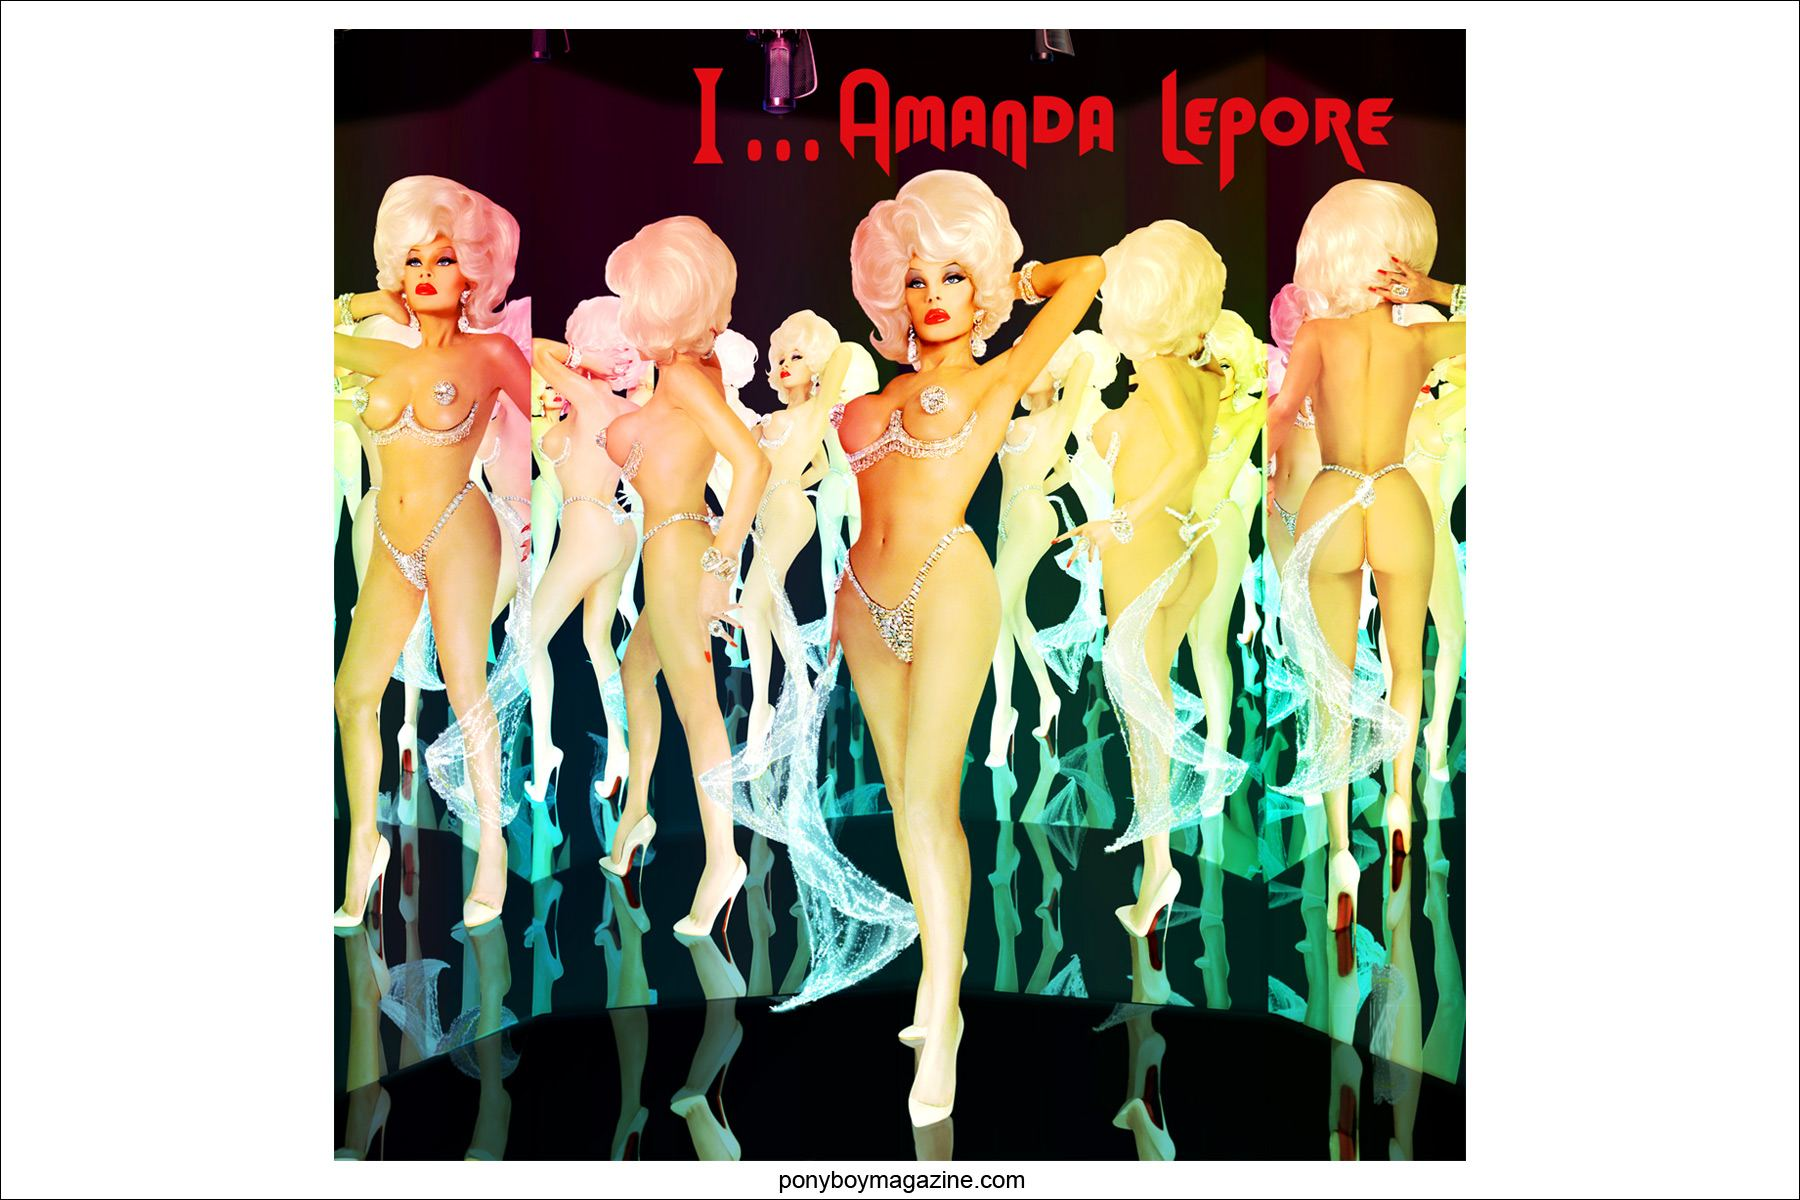 The amazing Amanda Lepore